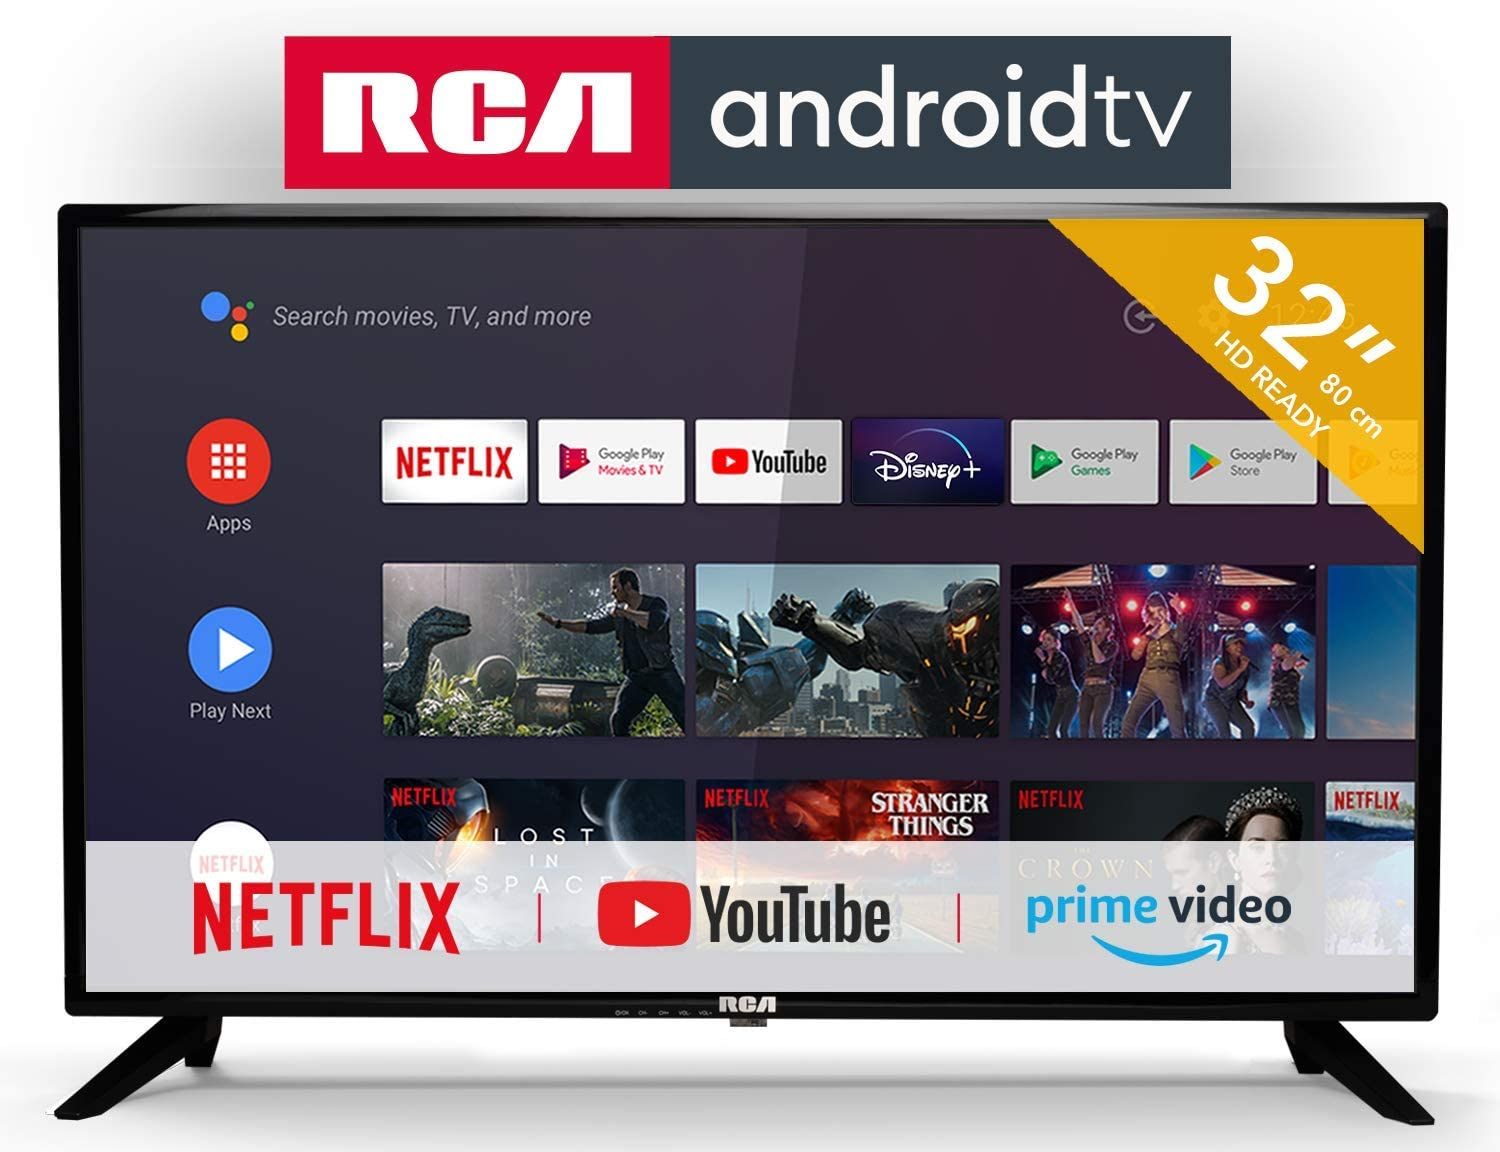 RCA RS32H2 Android TV (32 Pulgadas HD Smart TV con Google Assistant), Chromecast Incorporado, HDMI+USB, Triple Tuner, 60Hz: Amazon.es: Electrónica